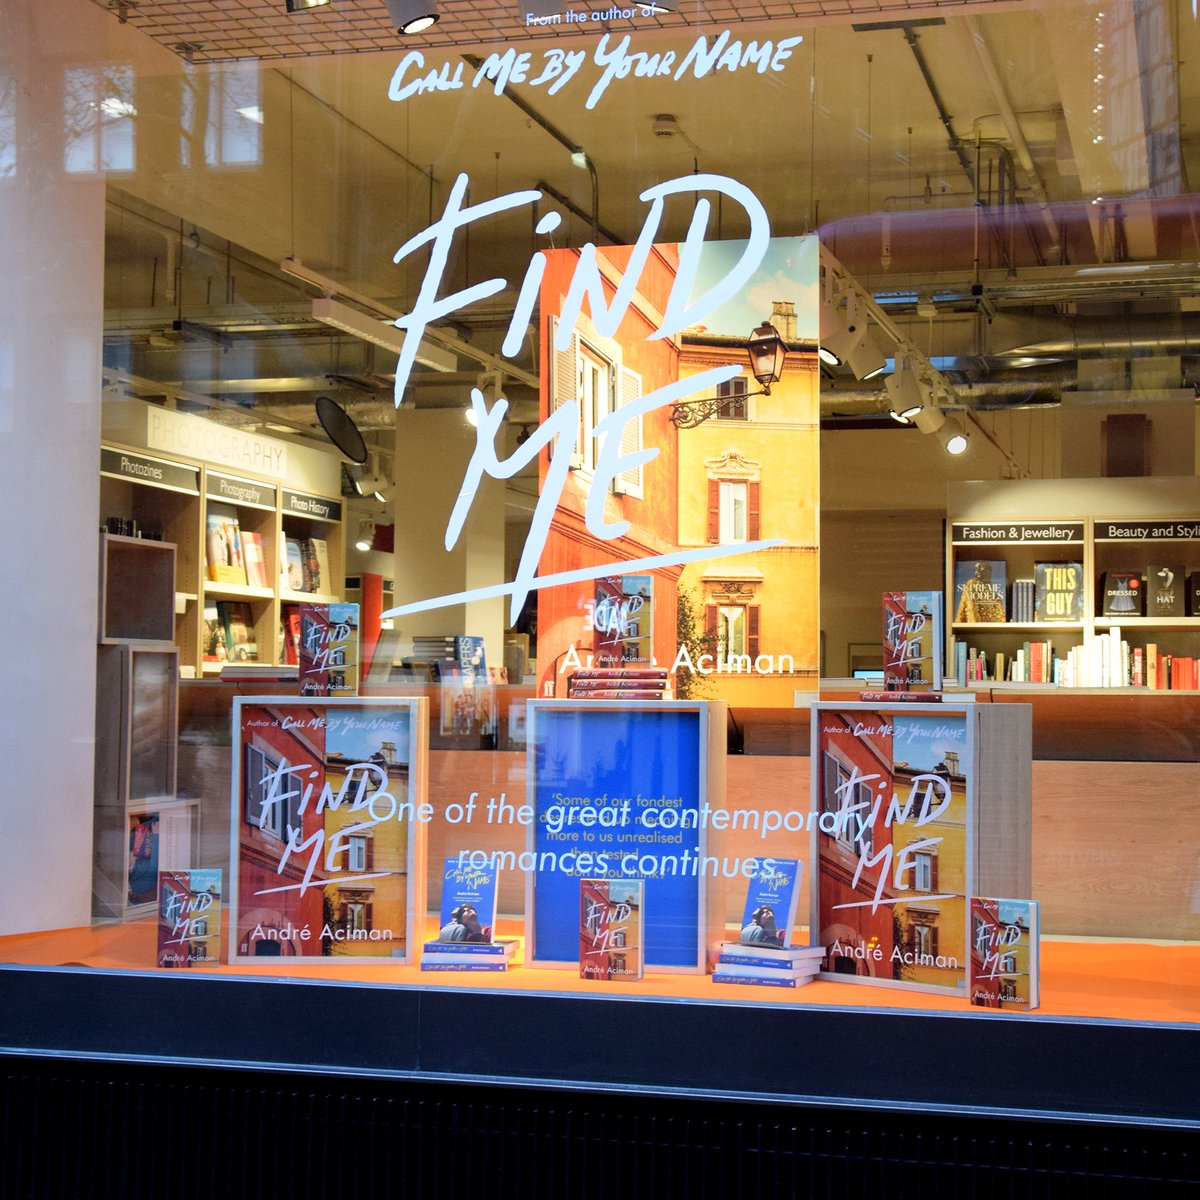 Spotlight on #FindMe—@aaciman much-anticipated sequel to his international bestseller #CallMeByYourName @FaberBooks—in the window of our Charing Cross Road shop 📸 Grab the gorgeous new chapter in Elio and Oliver's story today! Signed bookplate editions >> bit.ly/36IkHrI